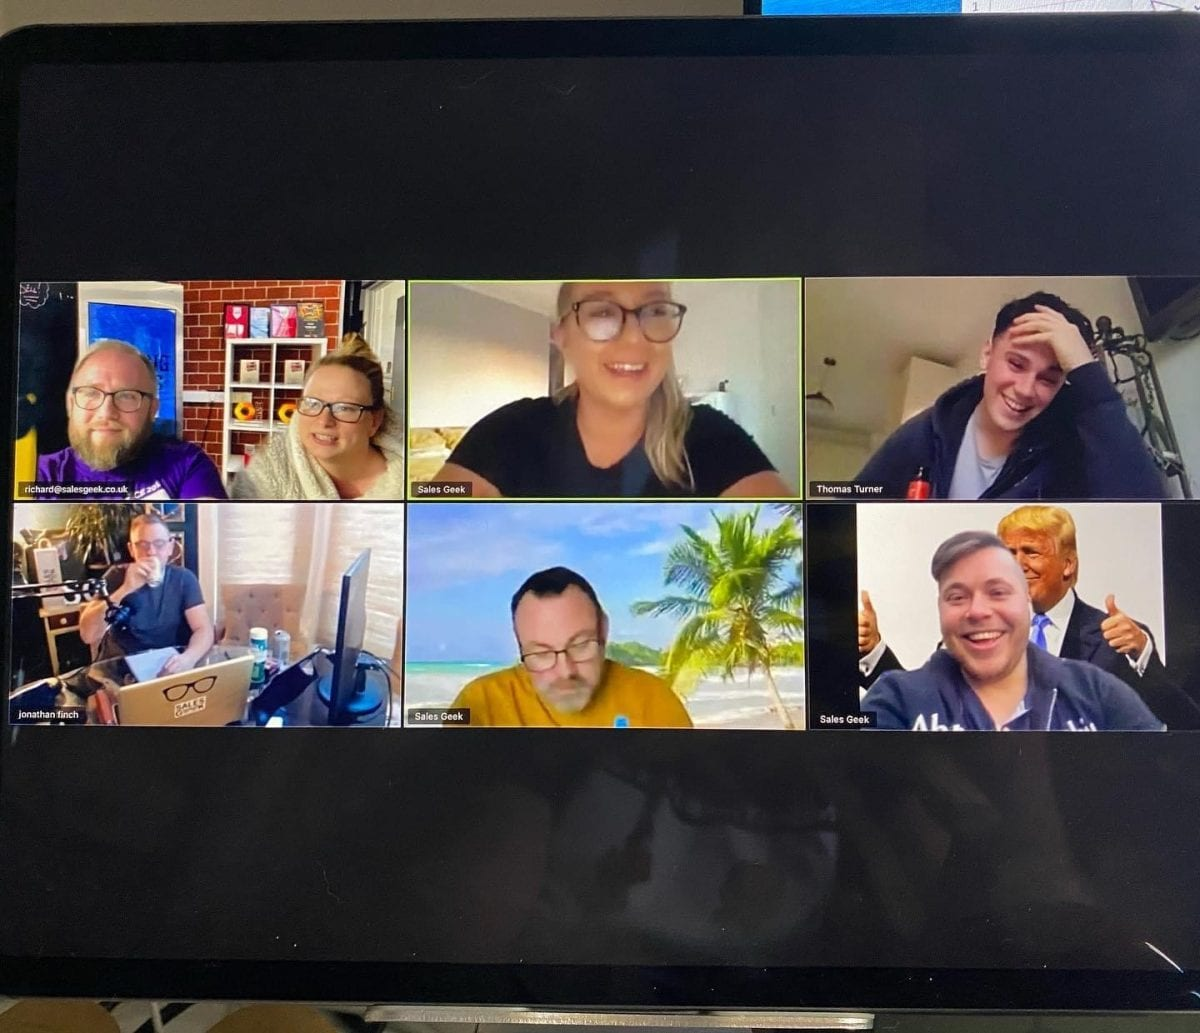 Team Geek On A Zoom Call